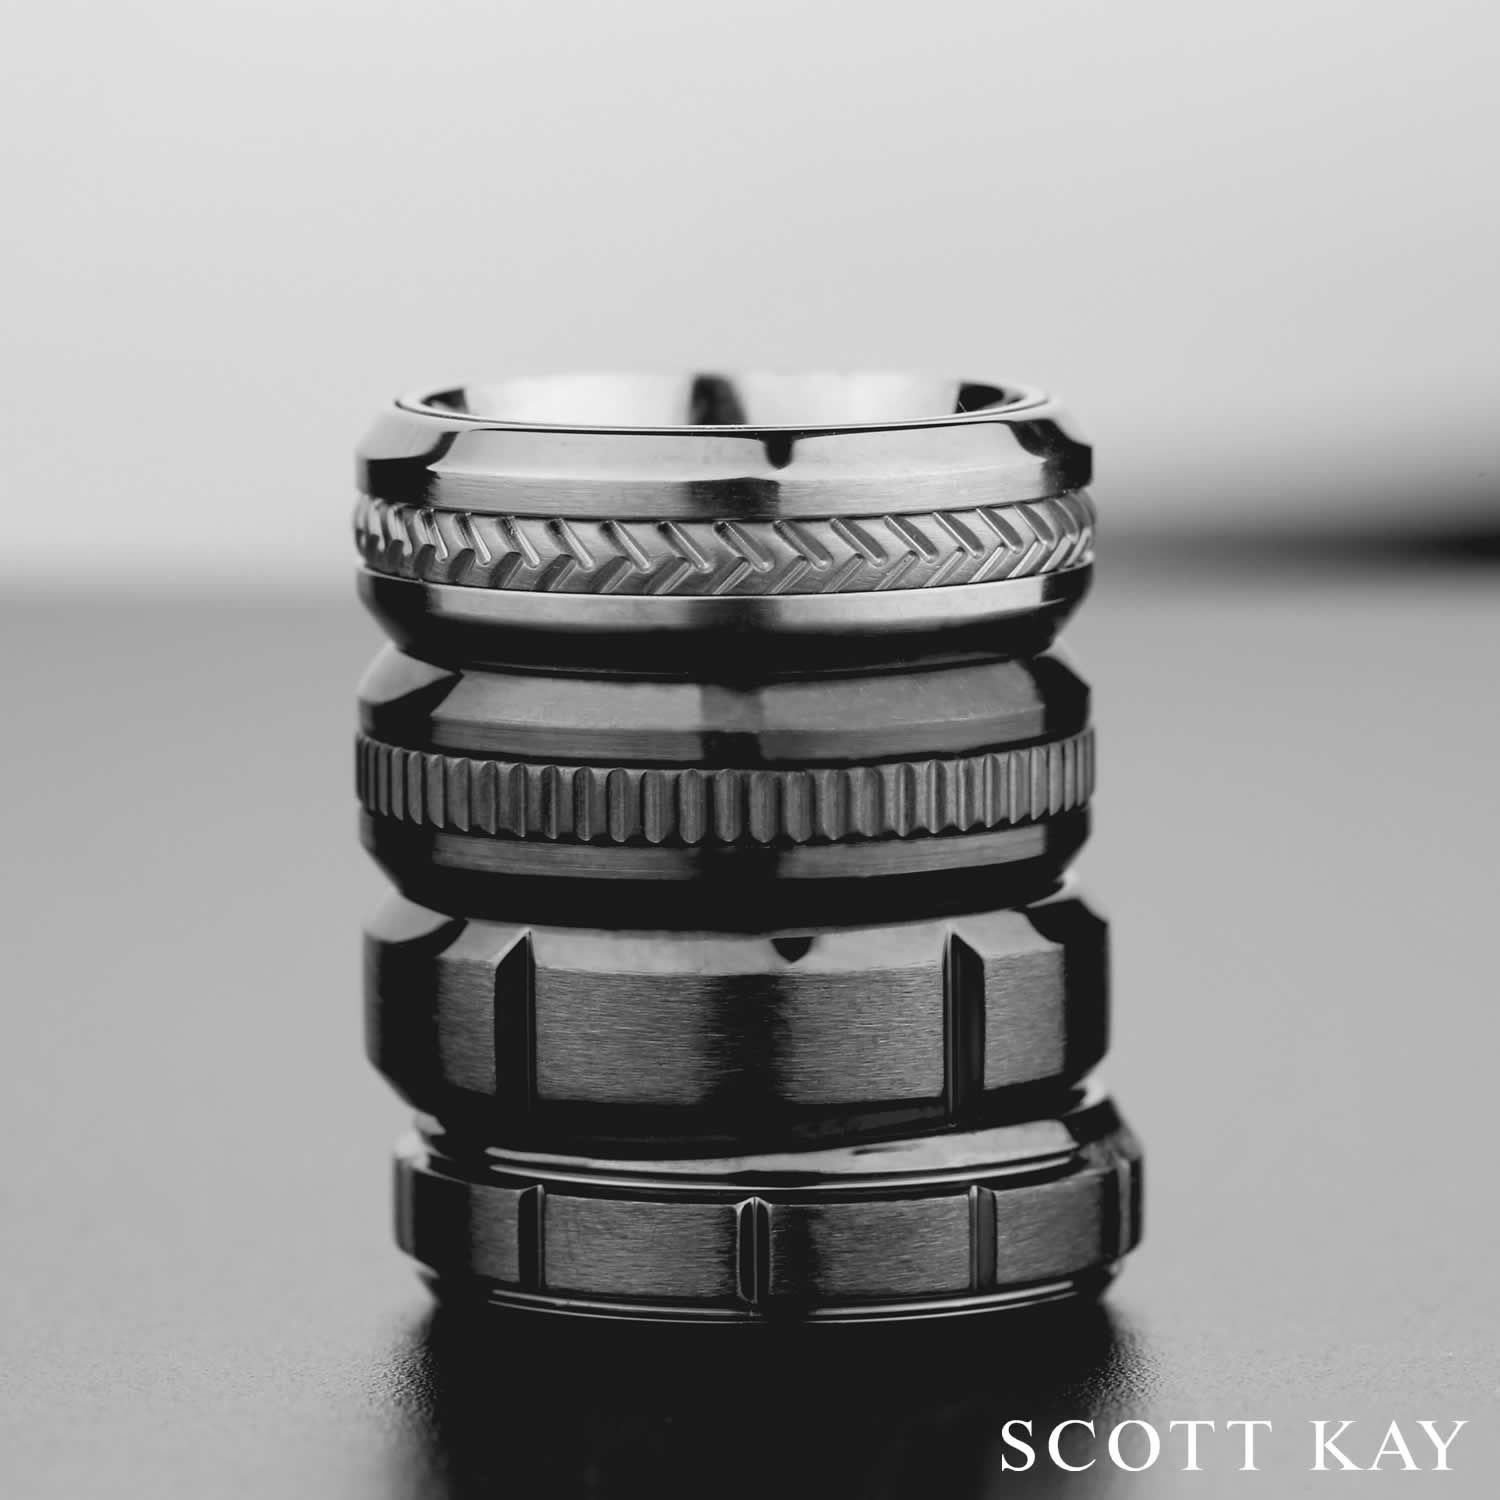 ‪#‎BioBlu27‬™ exhibits extremely high durability, superior strength, and excellent corrosion resistance. It has an extraordinary resistance to shock and pressure and is also scratch resistant, which allows it to maintain its luster throughout the toughest environmental conditions. ‪ #‎ScottKayCobalt‬